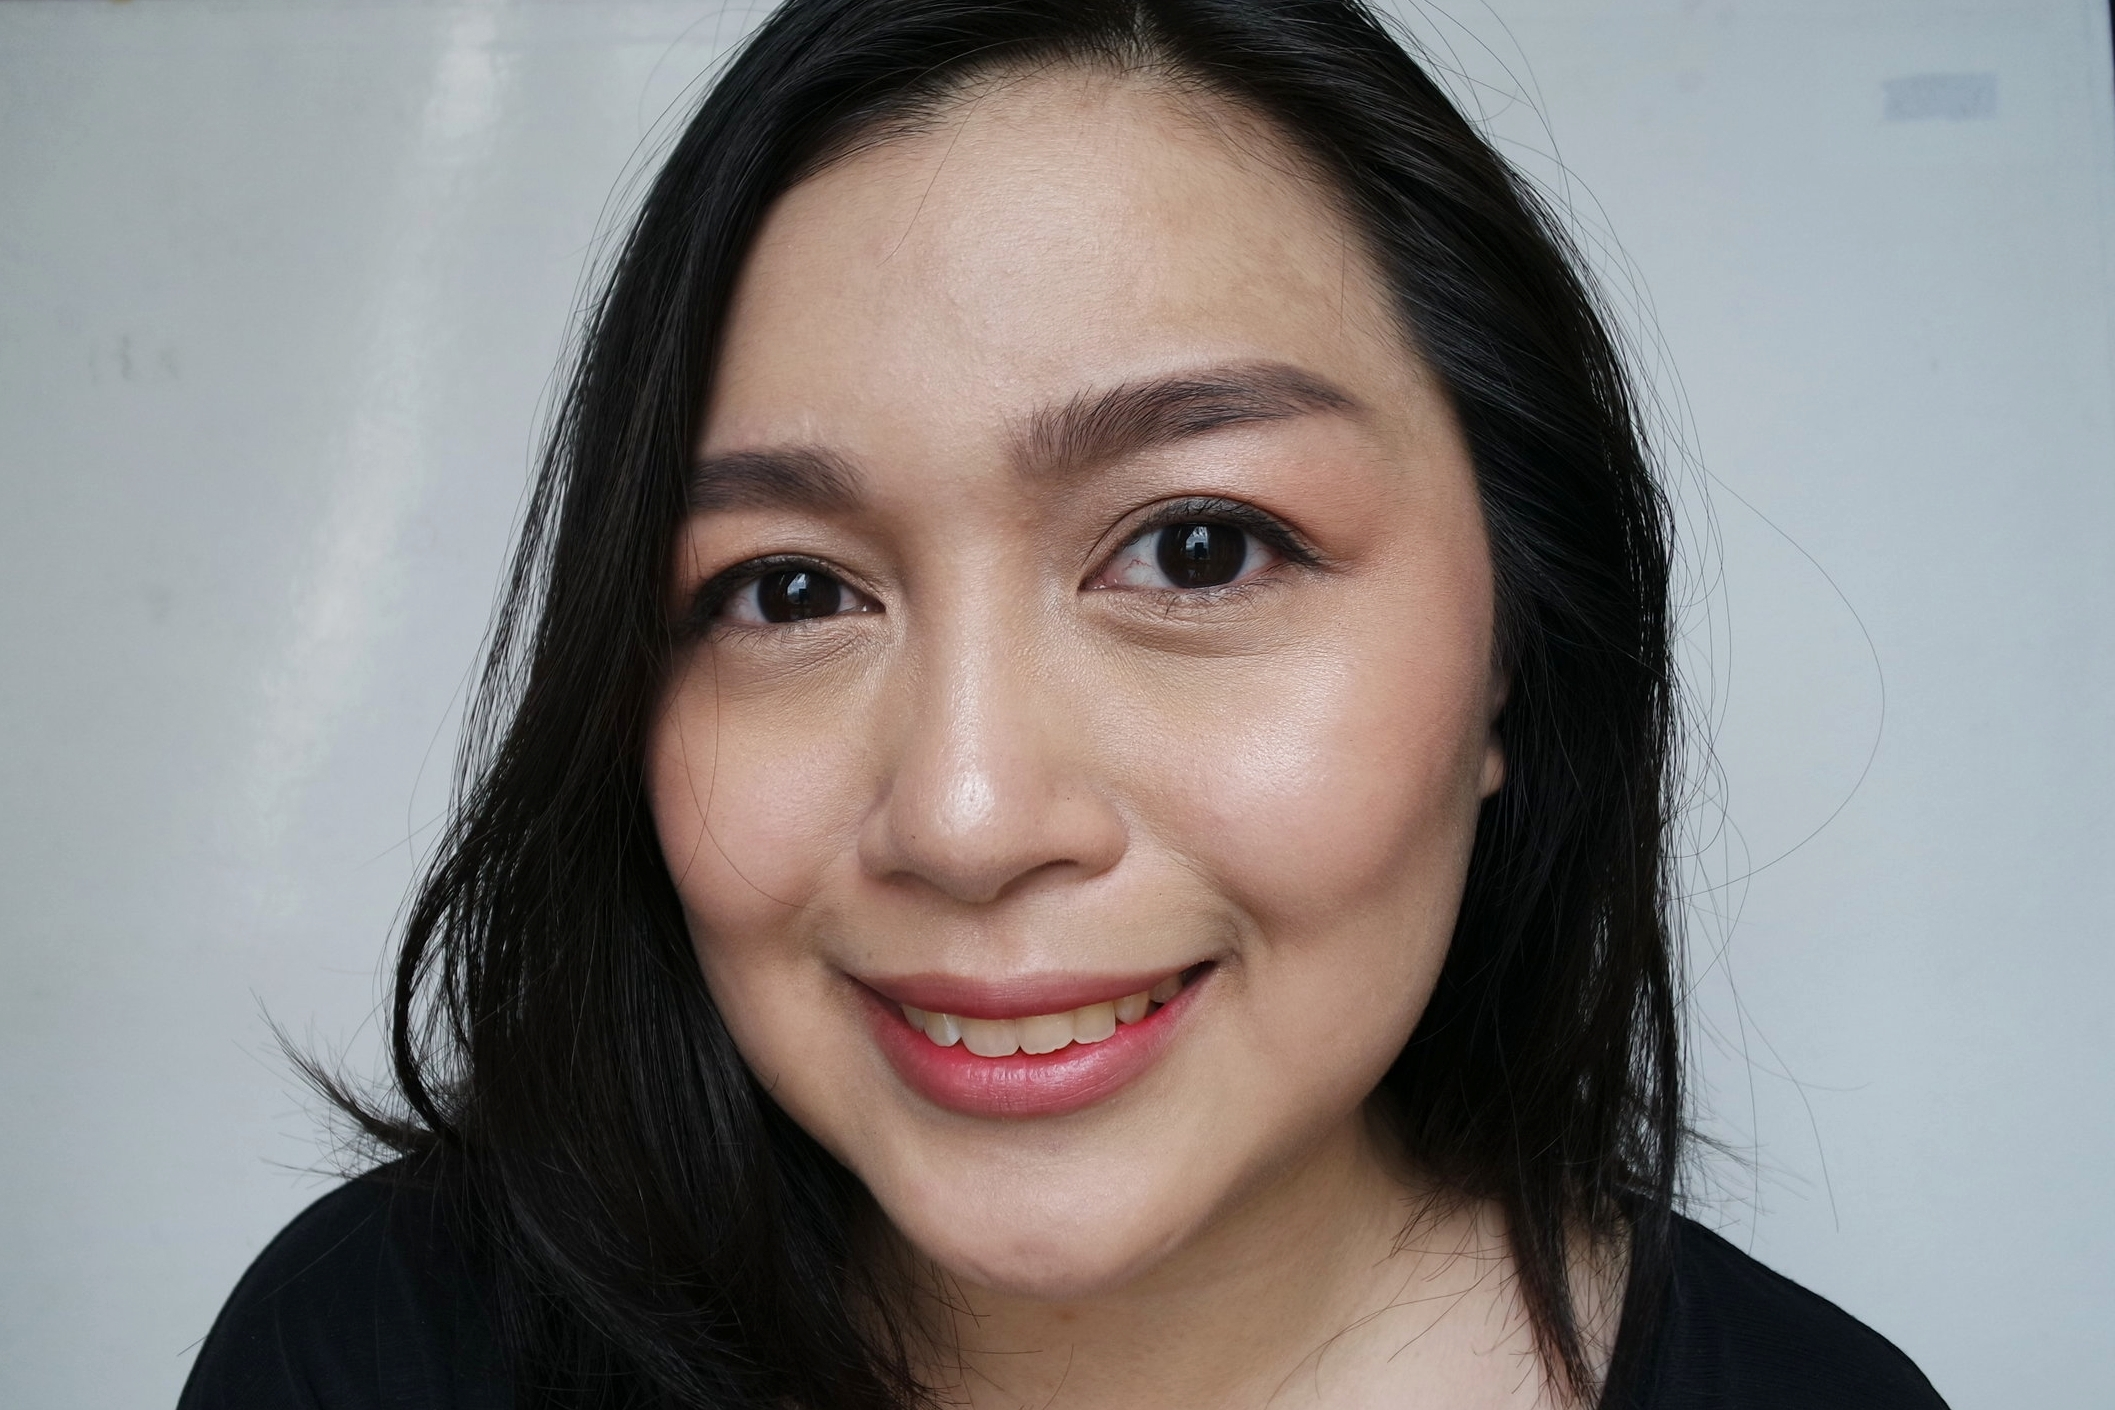 The finished look: glowy skin and minimal makeup, inspired by Kpop stars!